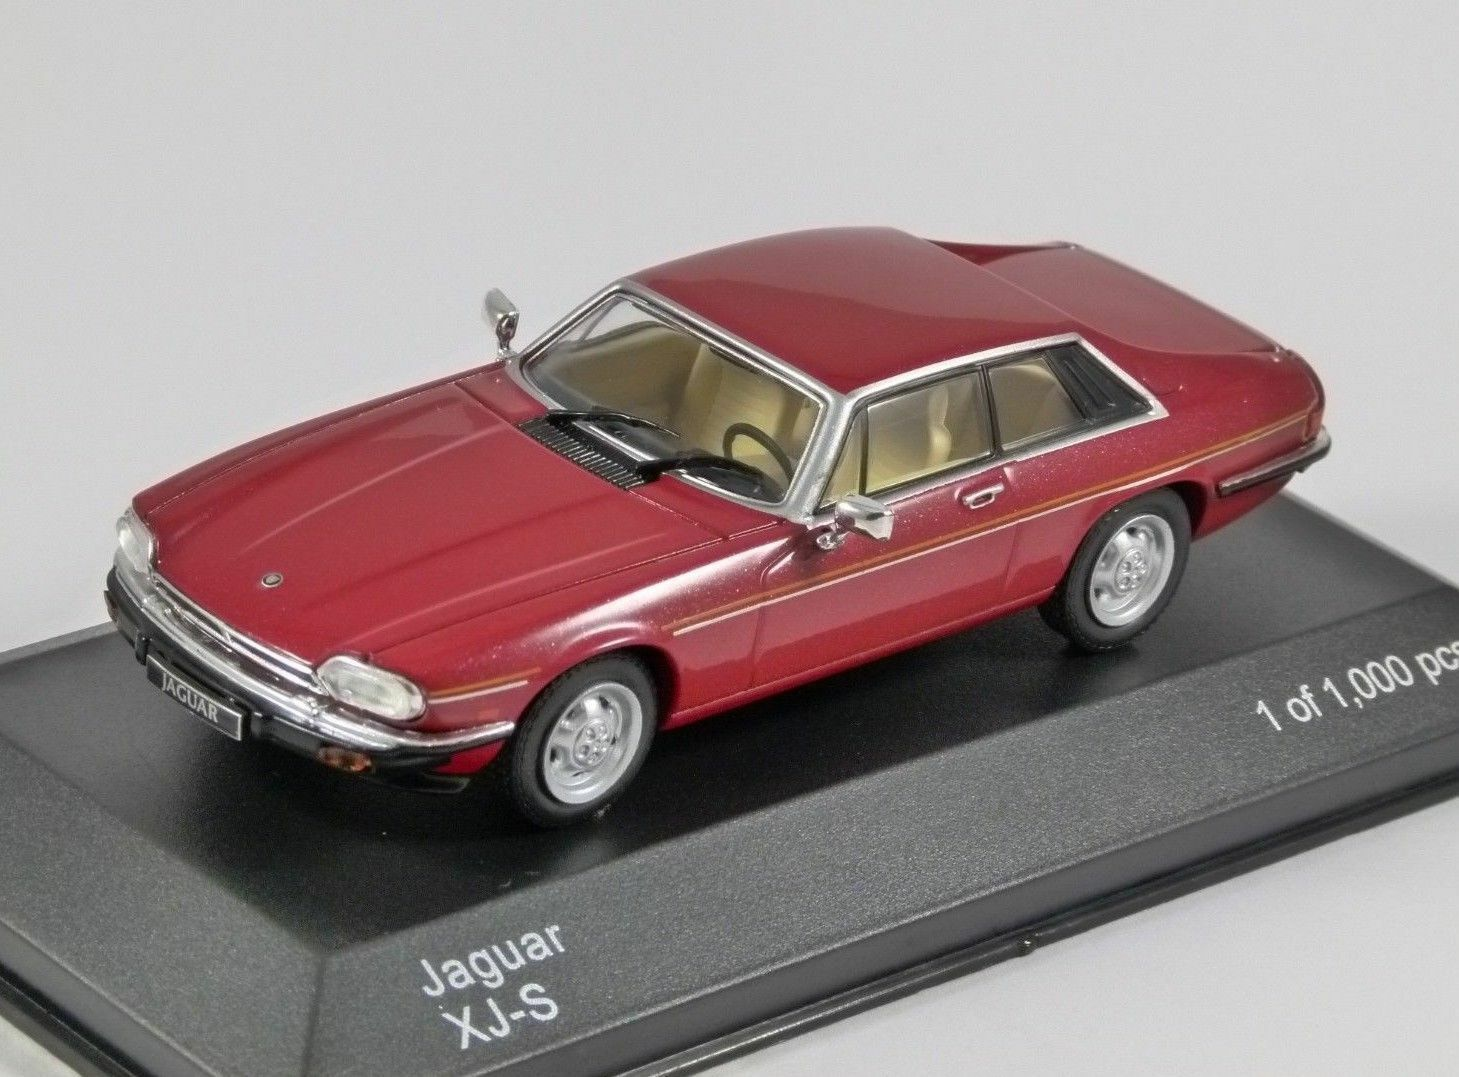 WHITEBOX WB288, 1975 JAGUAR XJ-S, RED, 1 43 SCALE